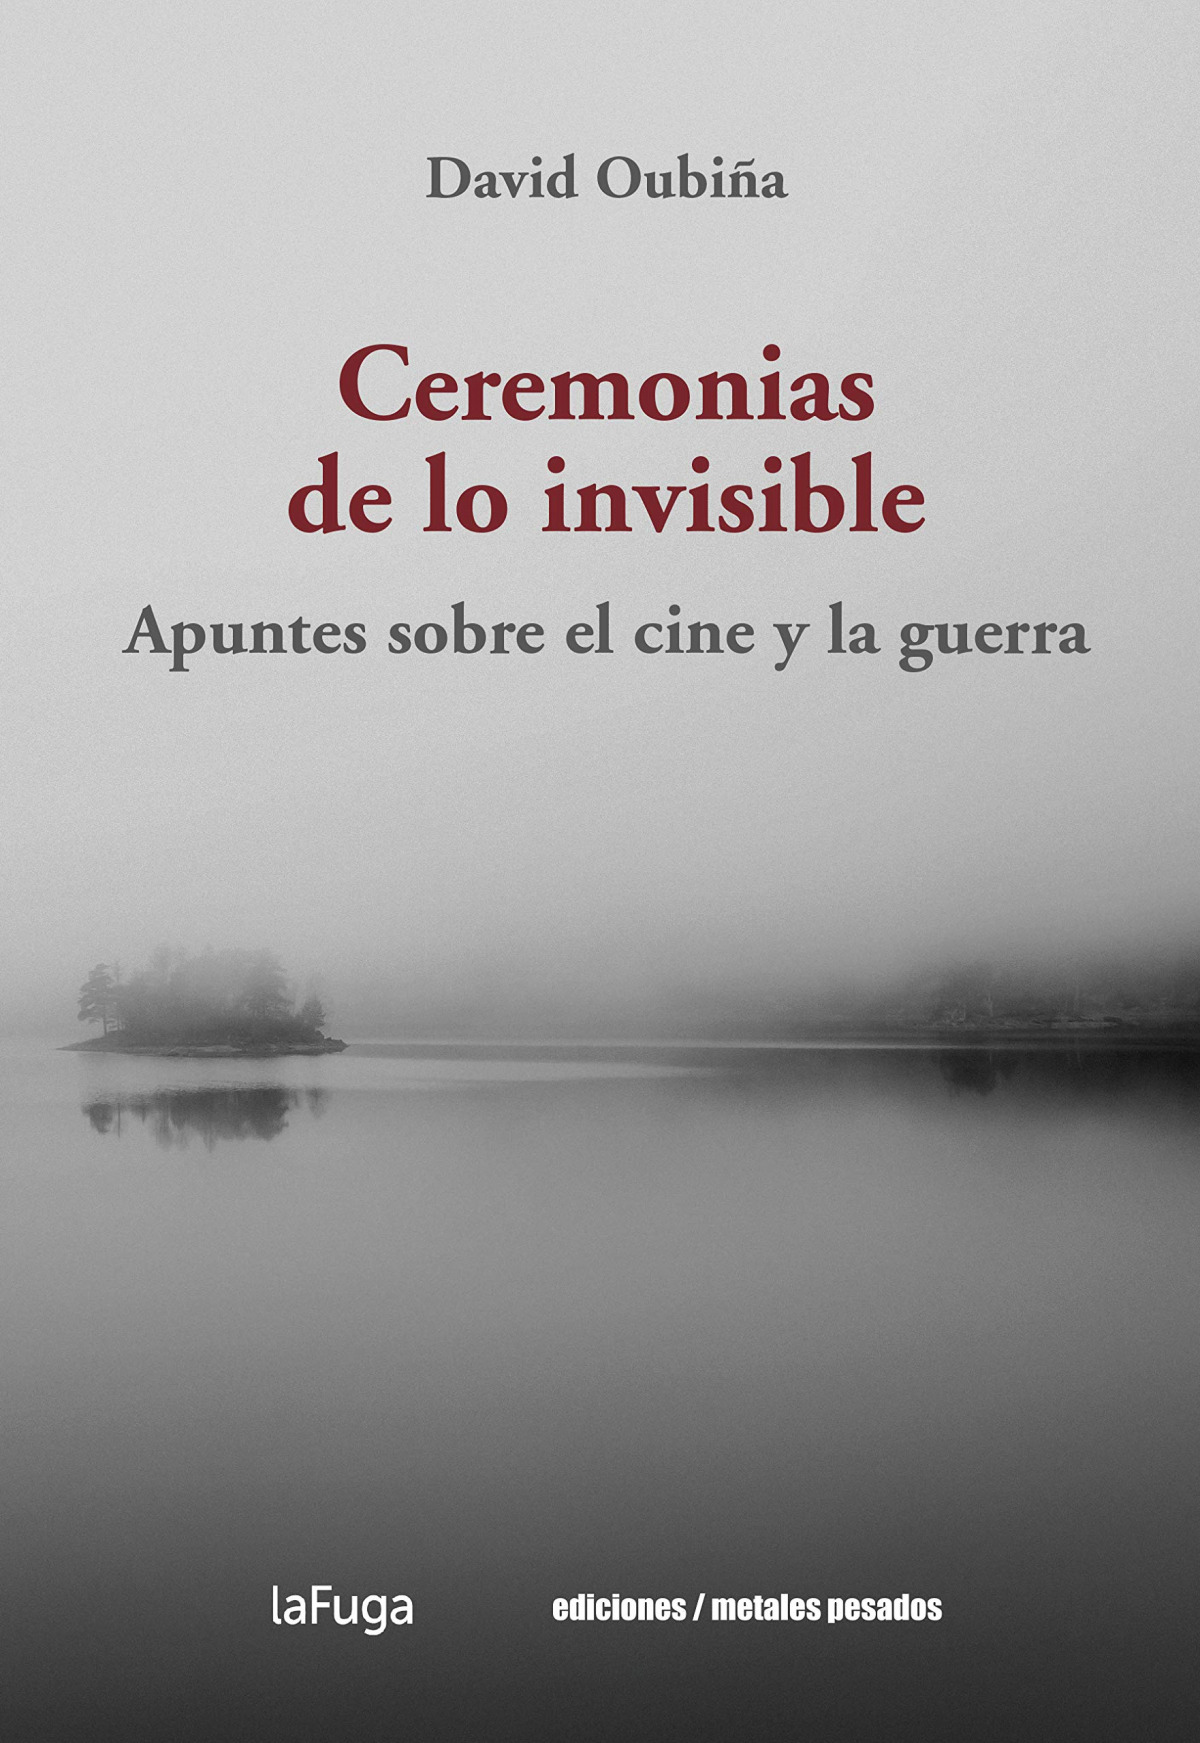 CEREMONIAS DE LO INVISIBLE